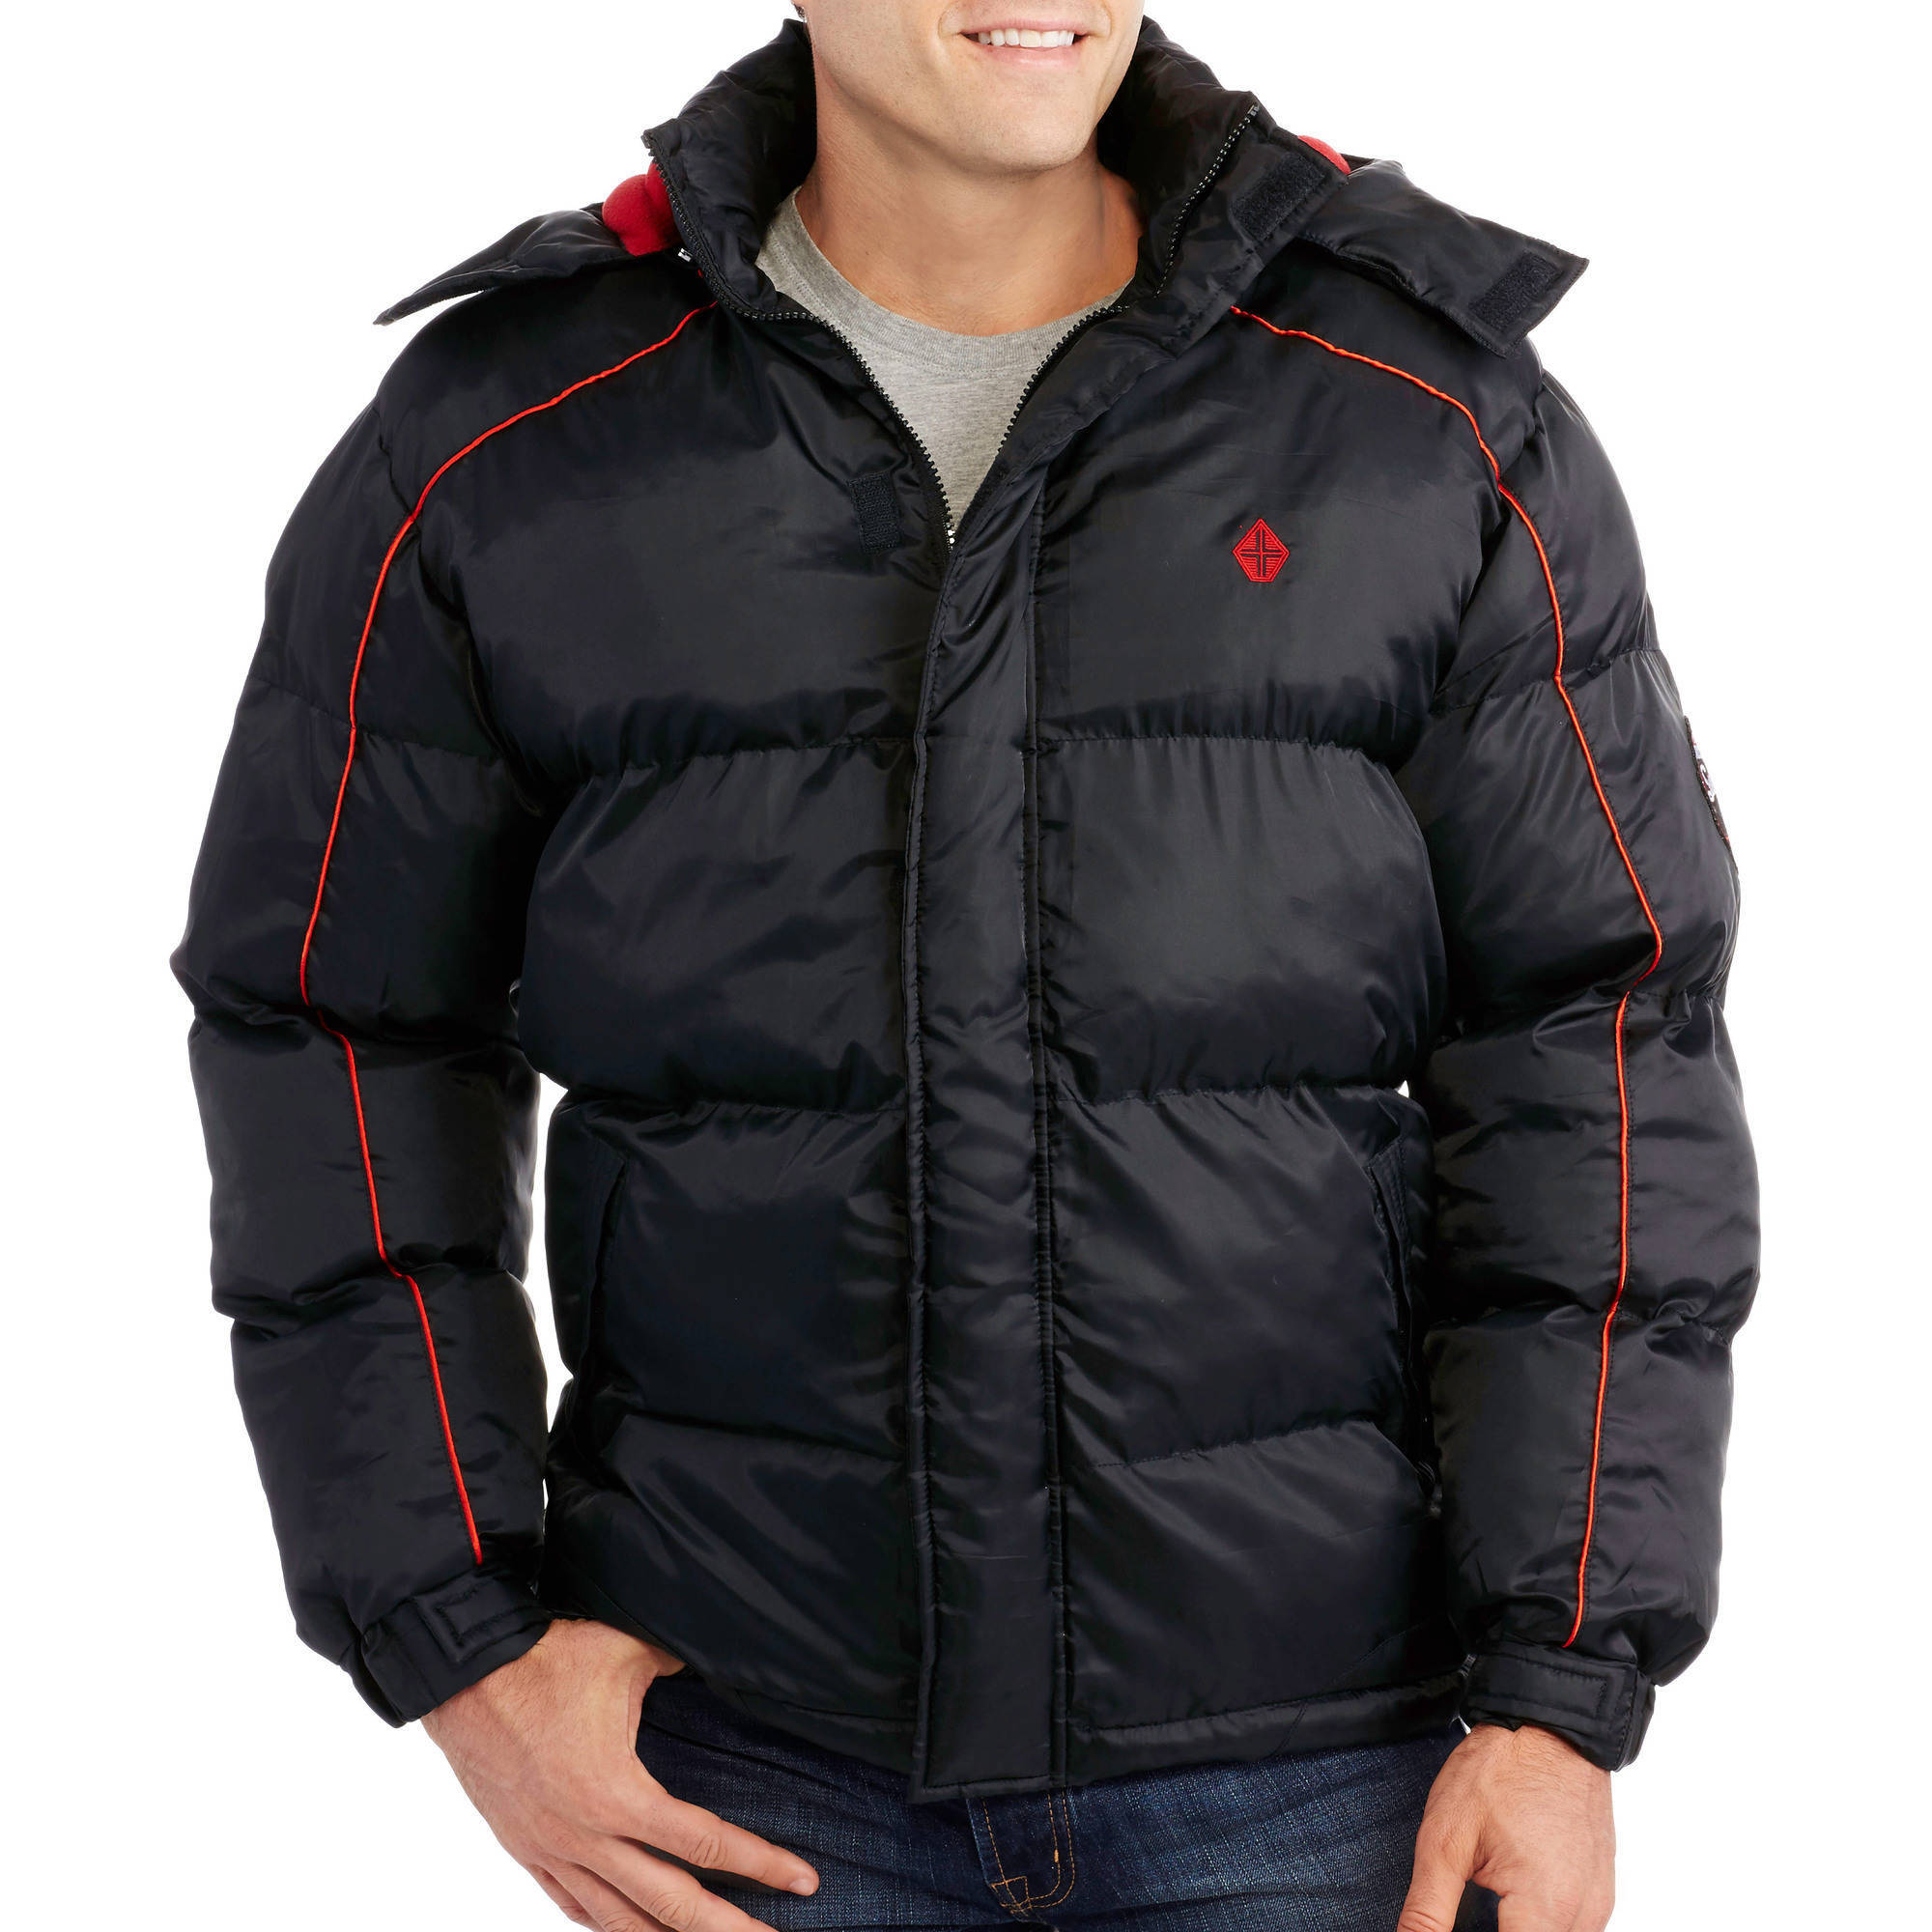 Men's Bubble Jacket Contrast Color